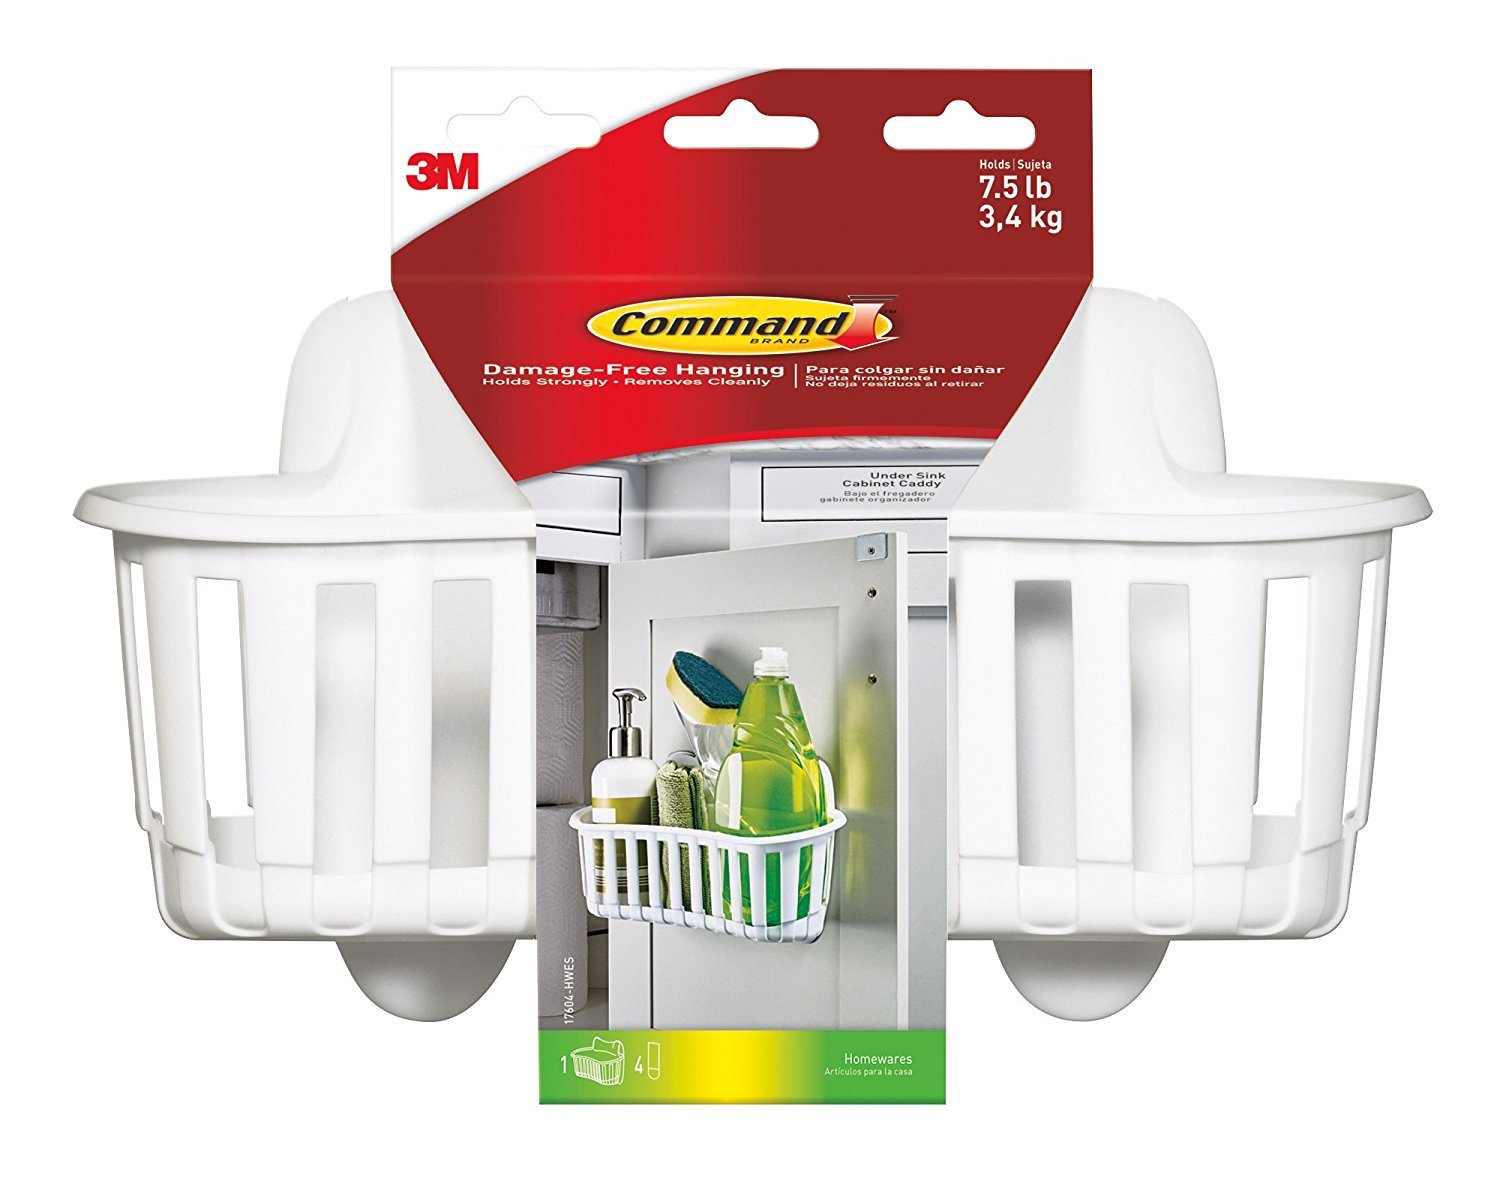 Command Under Sink Cabinet Caddy, Large, 1-Caddy (17604-HWES) (Pack of 3)